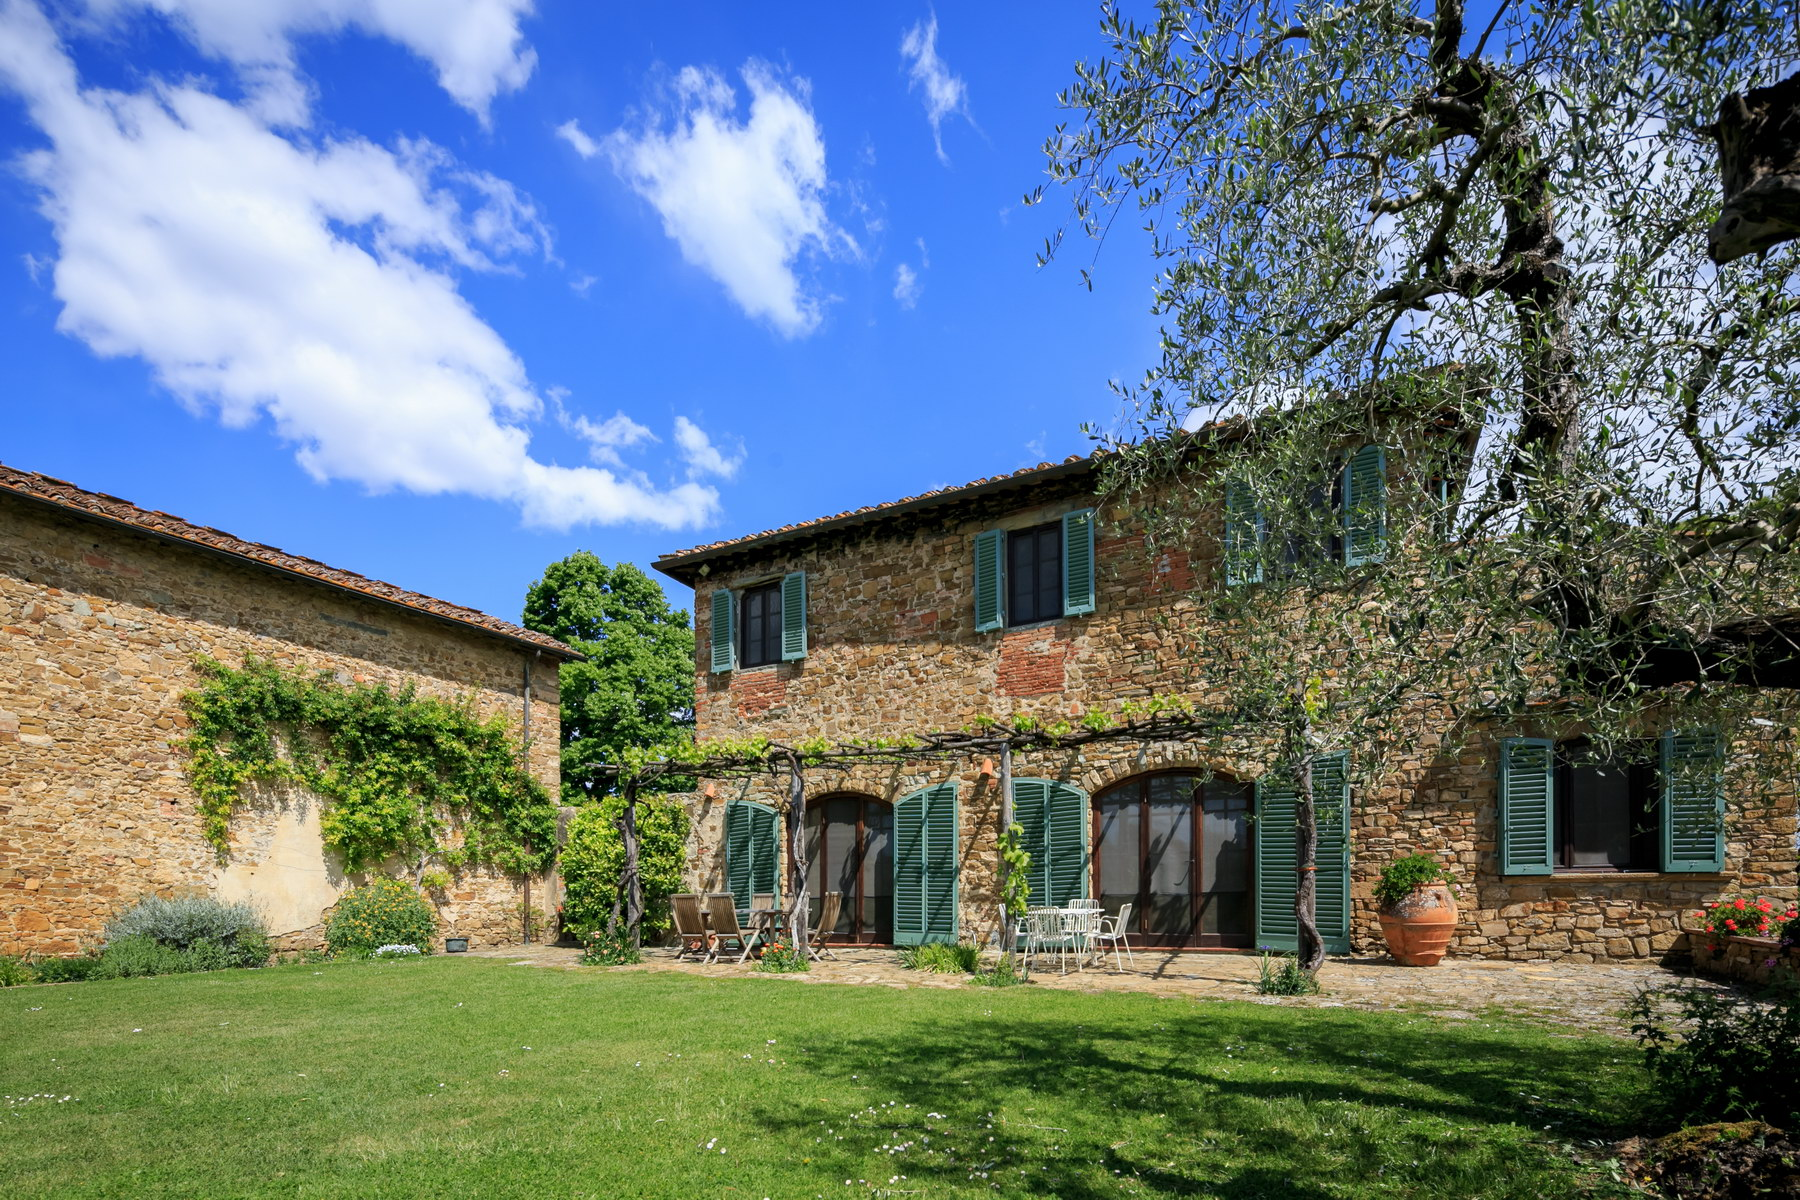 Single Family Home for Sale at Beautiful countryhouse on the Florentine hills Impruneta, Florence Italy